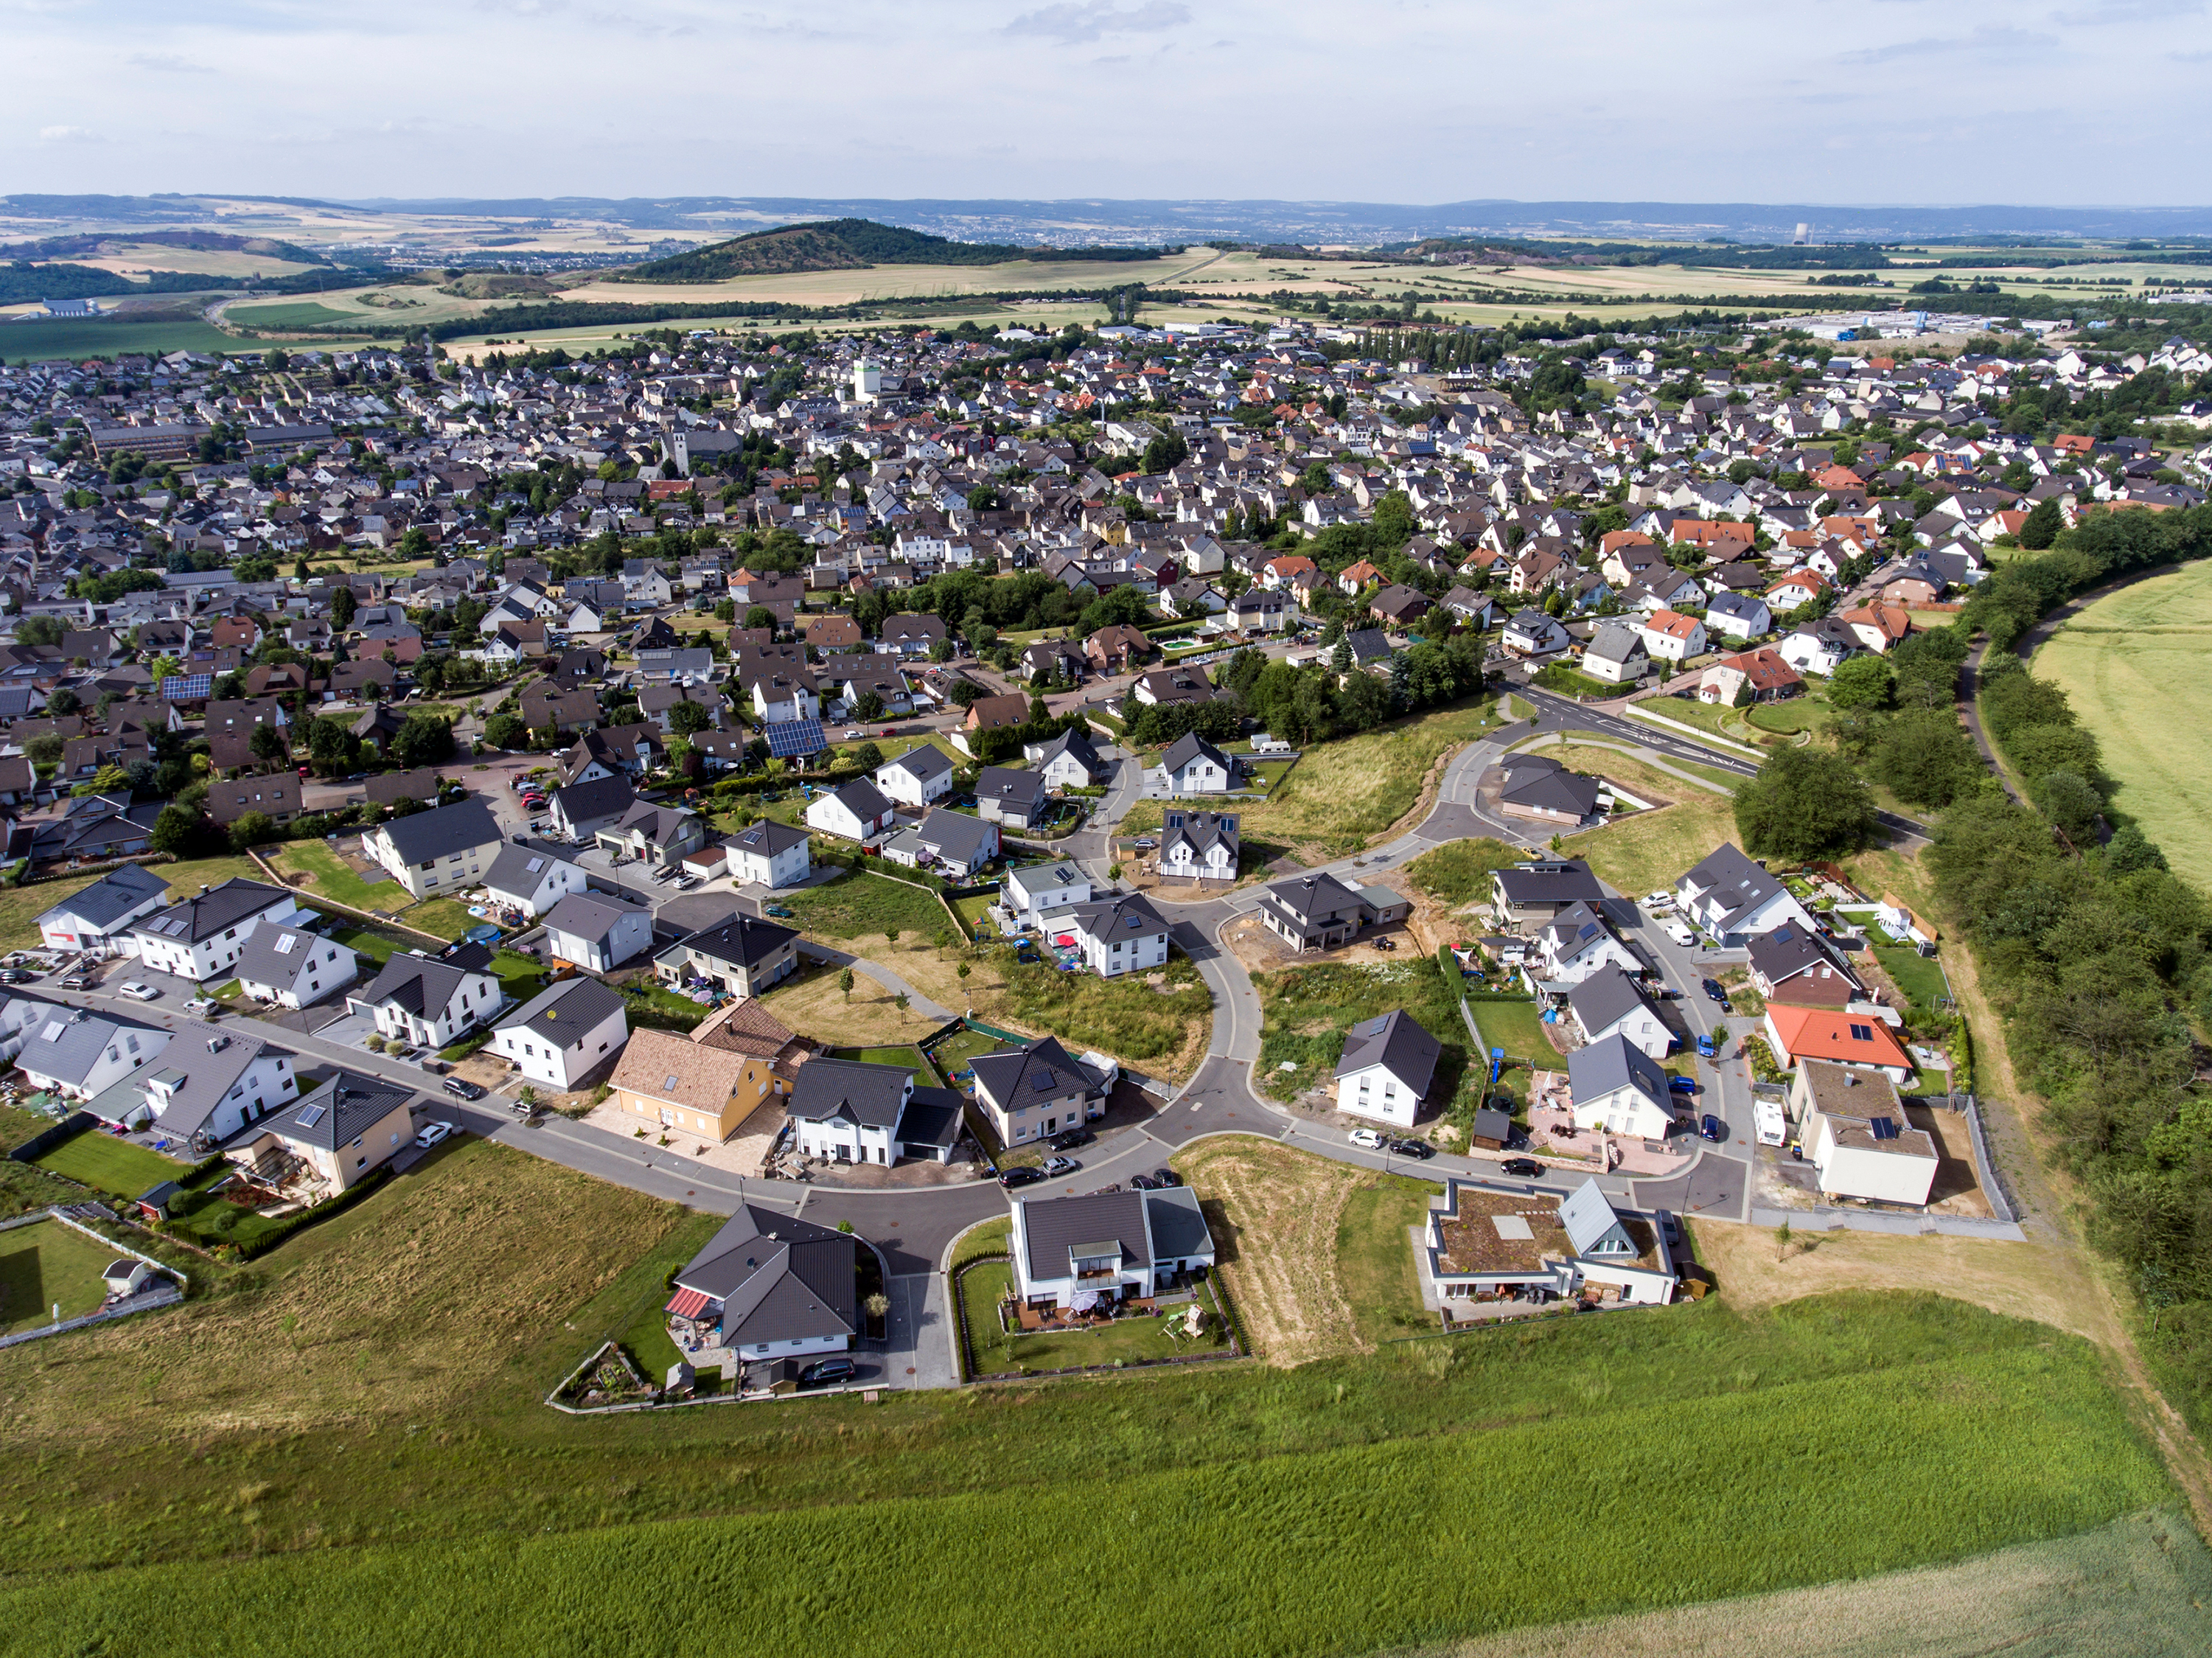 Aerial view of surroundings and the village of Ochtendung in Germany on a sunny summer day with blue sky